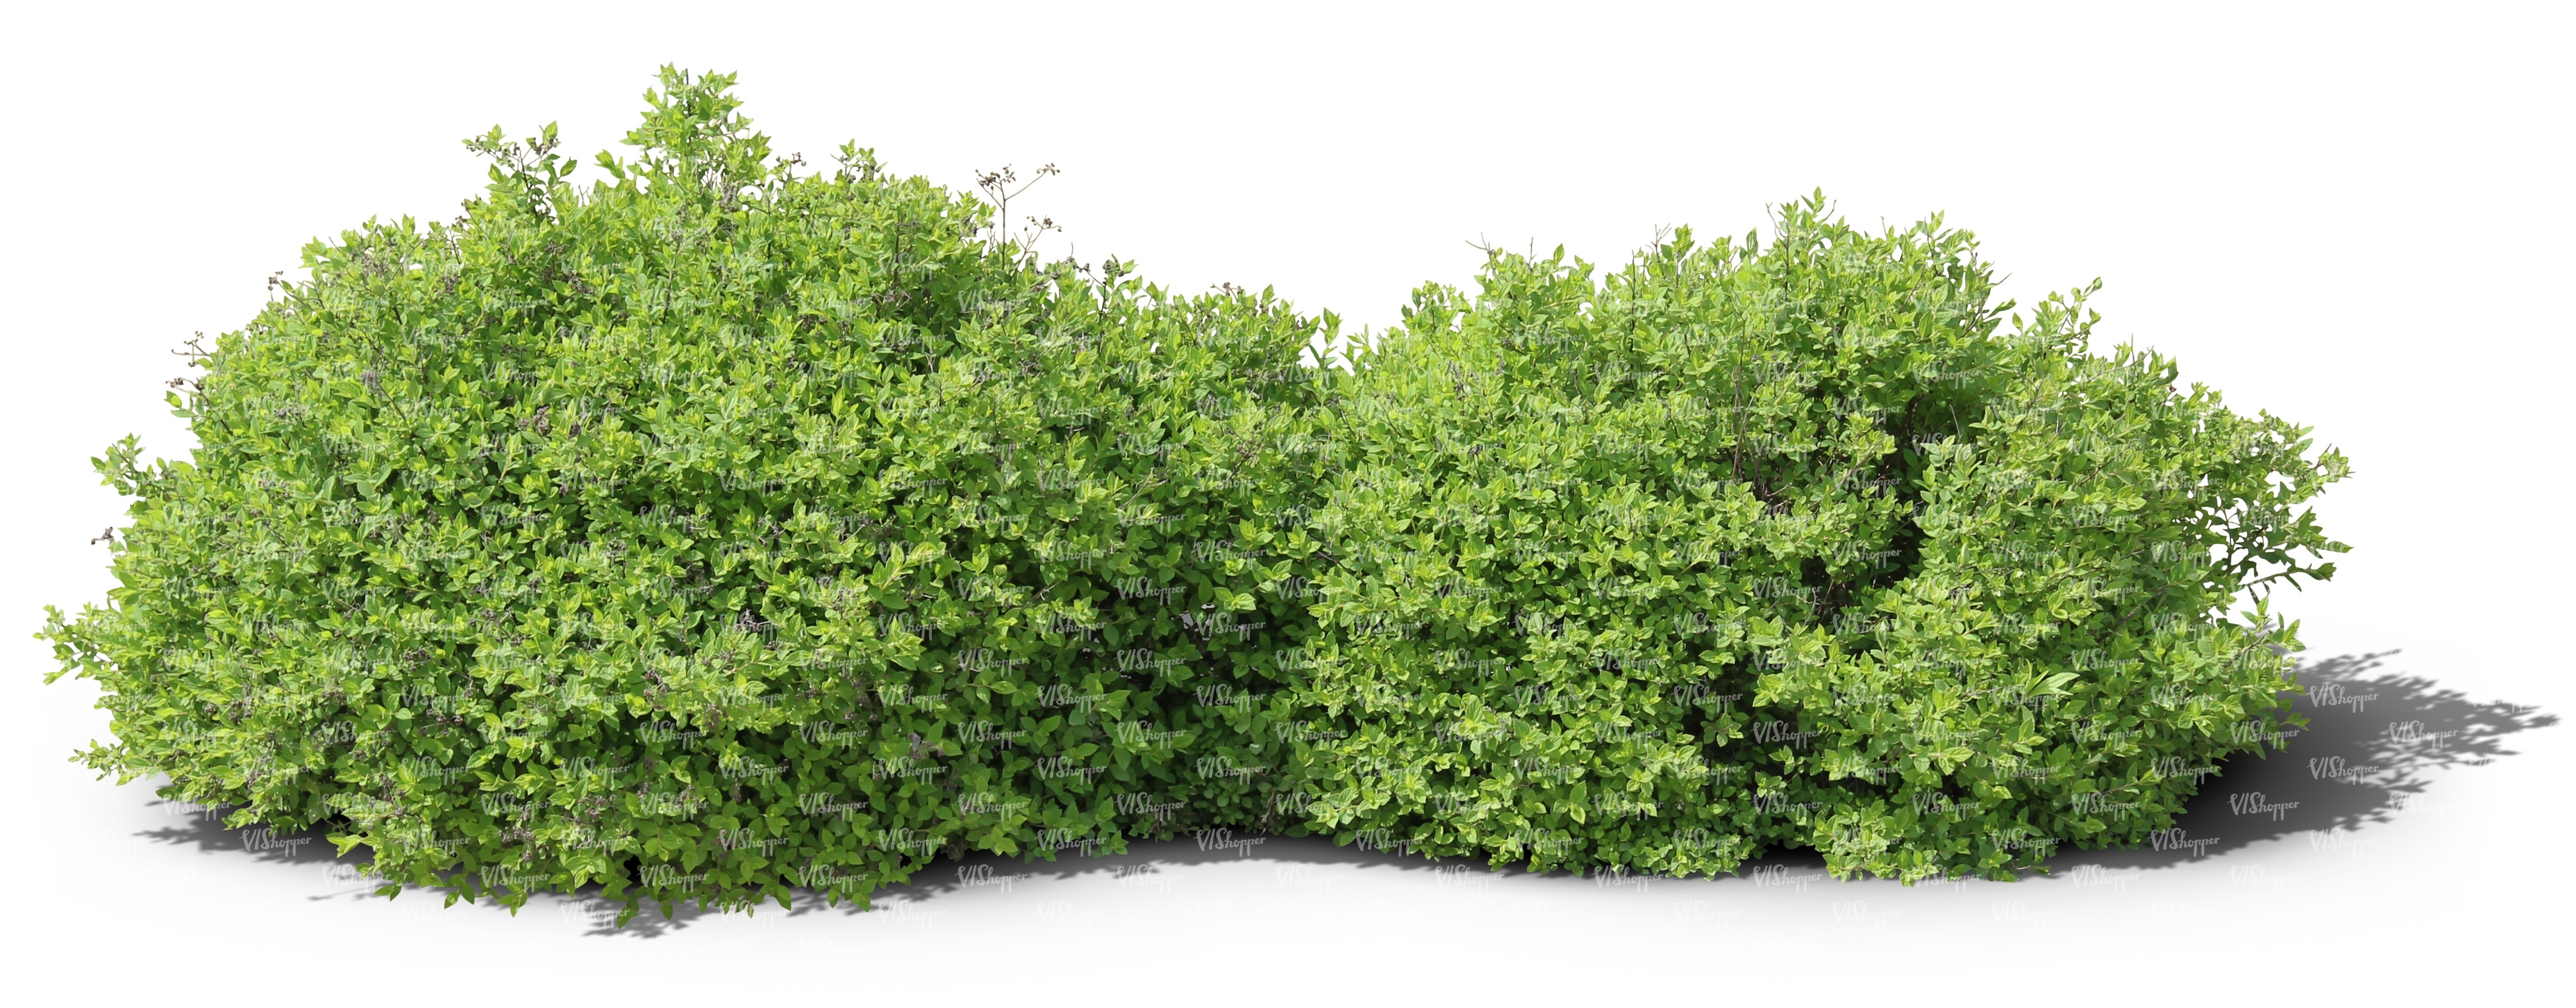 Two Cut Out Ordinary Small Bushes Cut Out Trees And